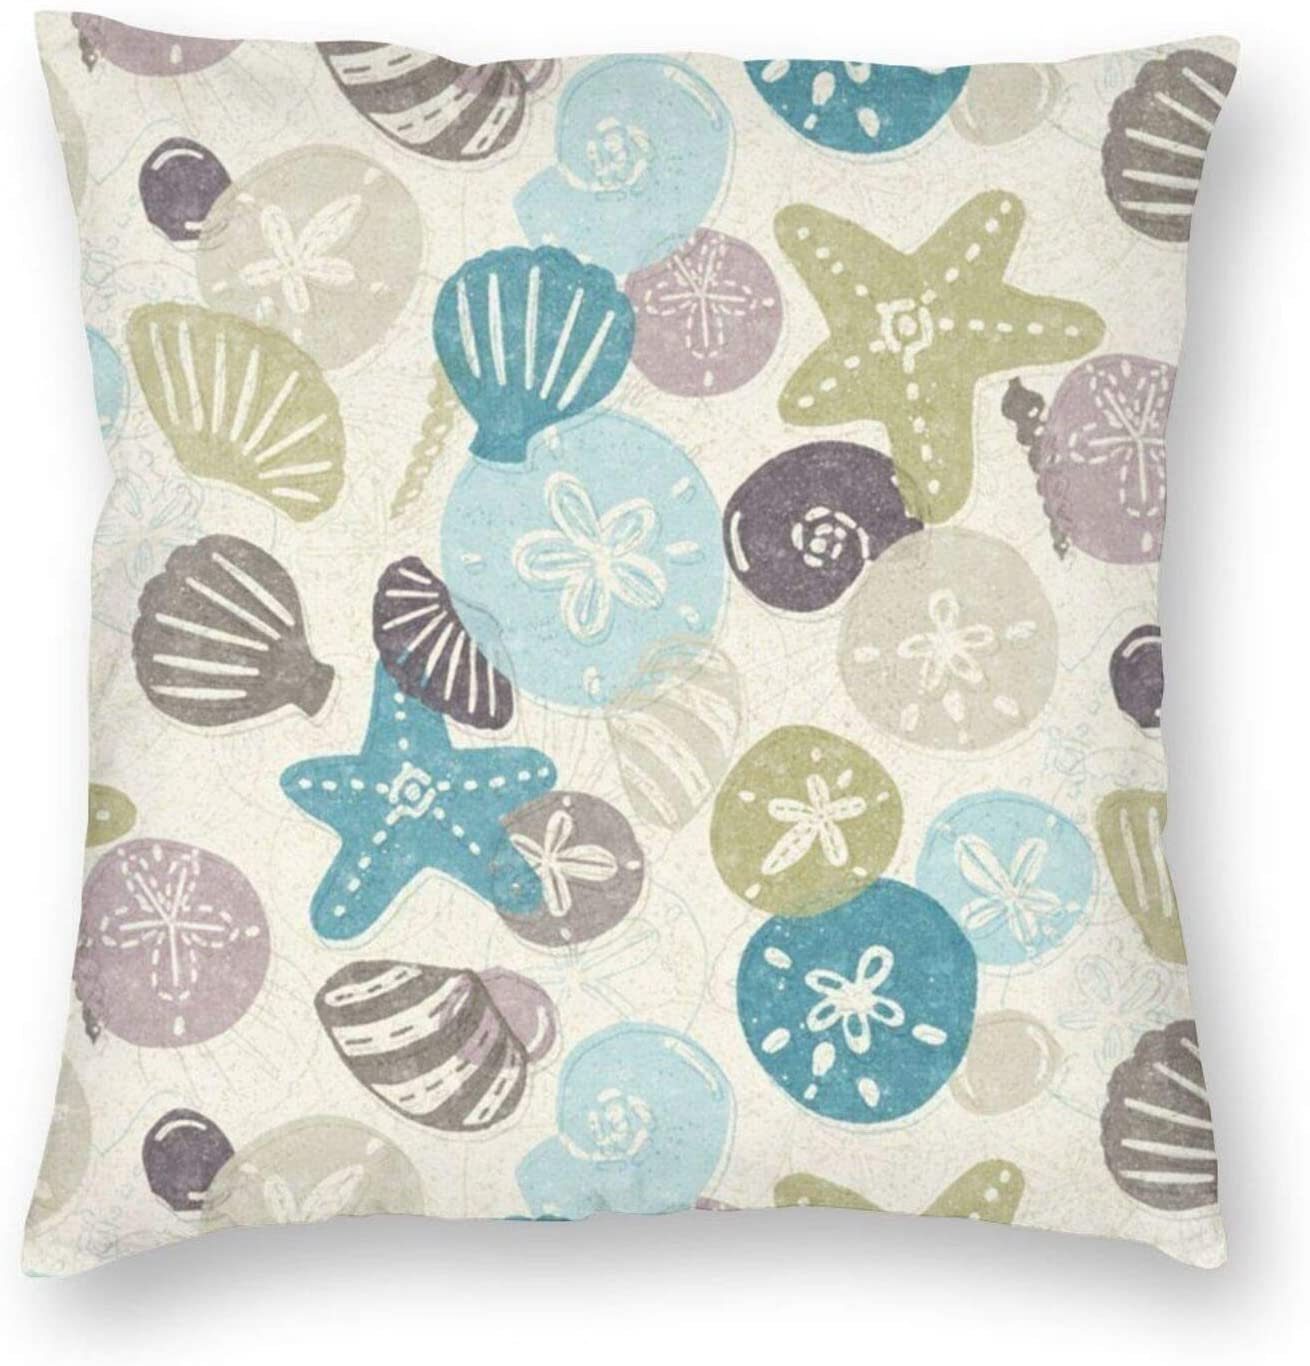 antkondnm Seashells Throw Pillow Covers, Square Decorative Pillow Covers for Home Decor